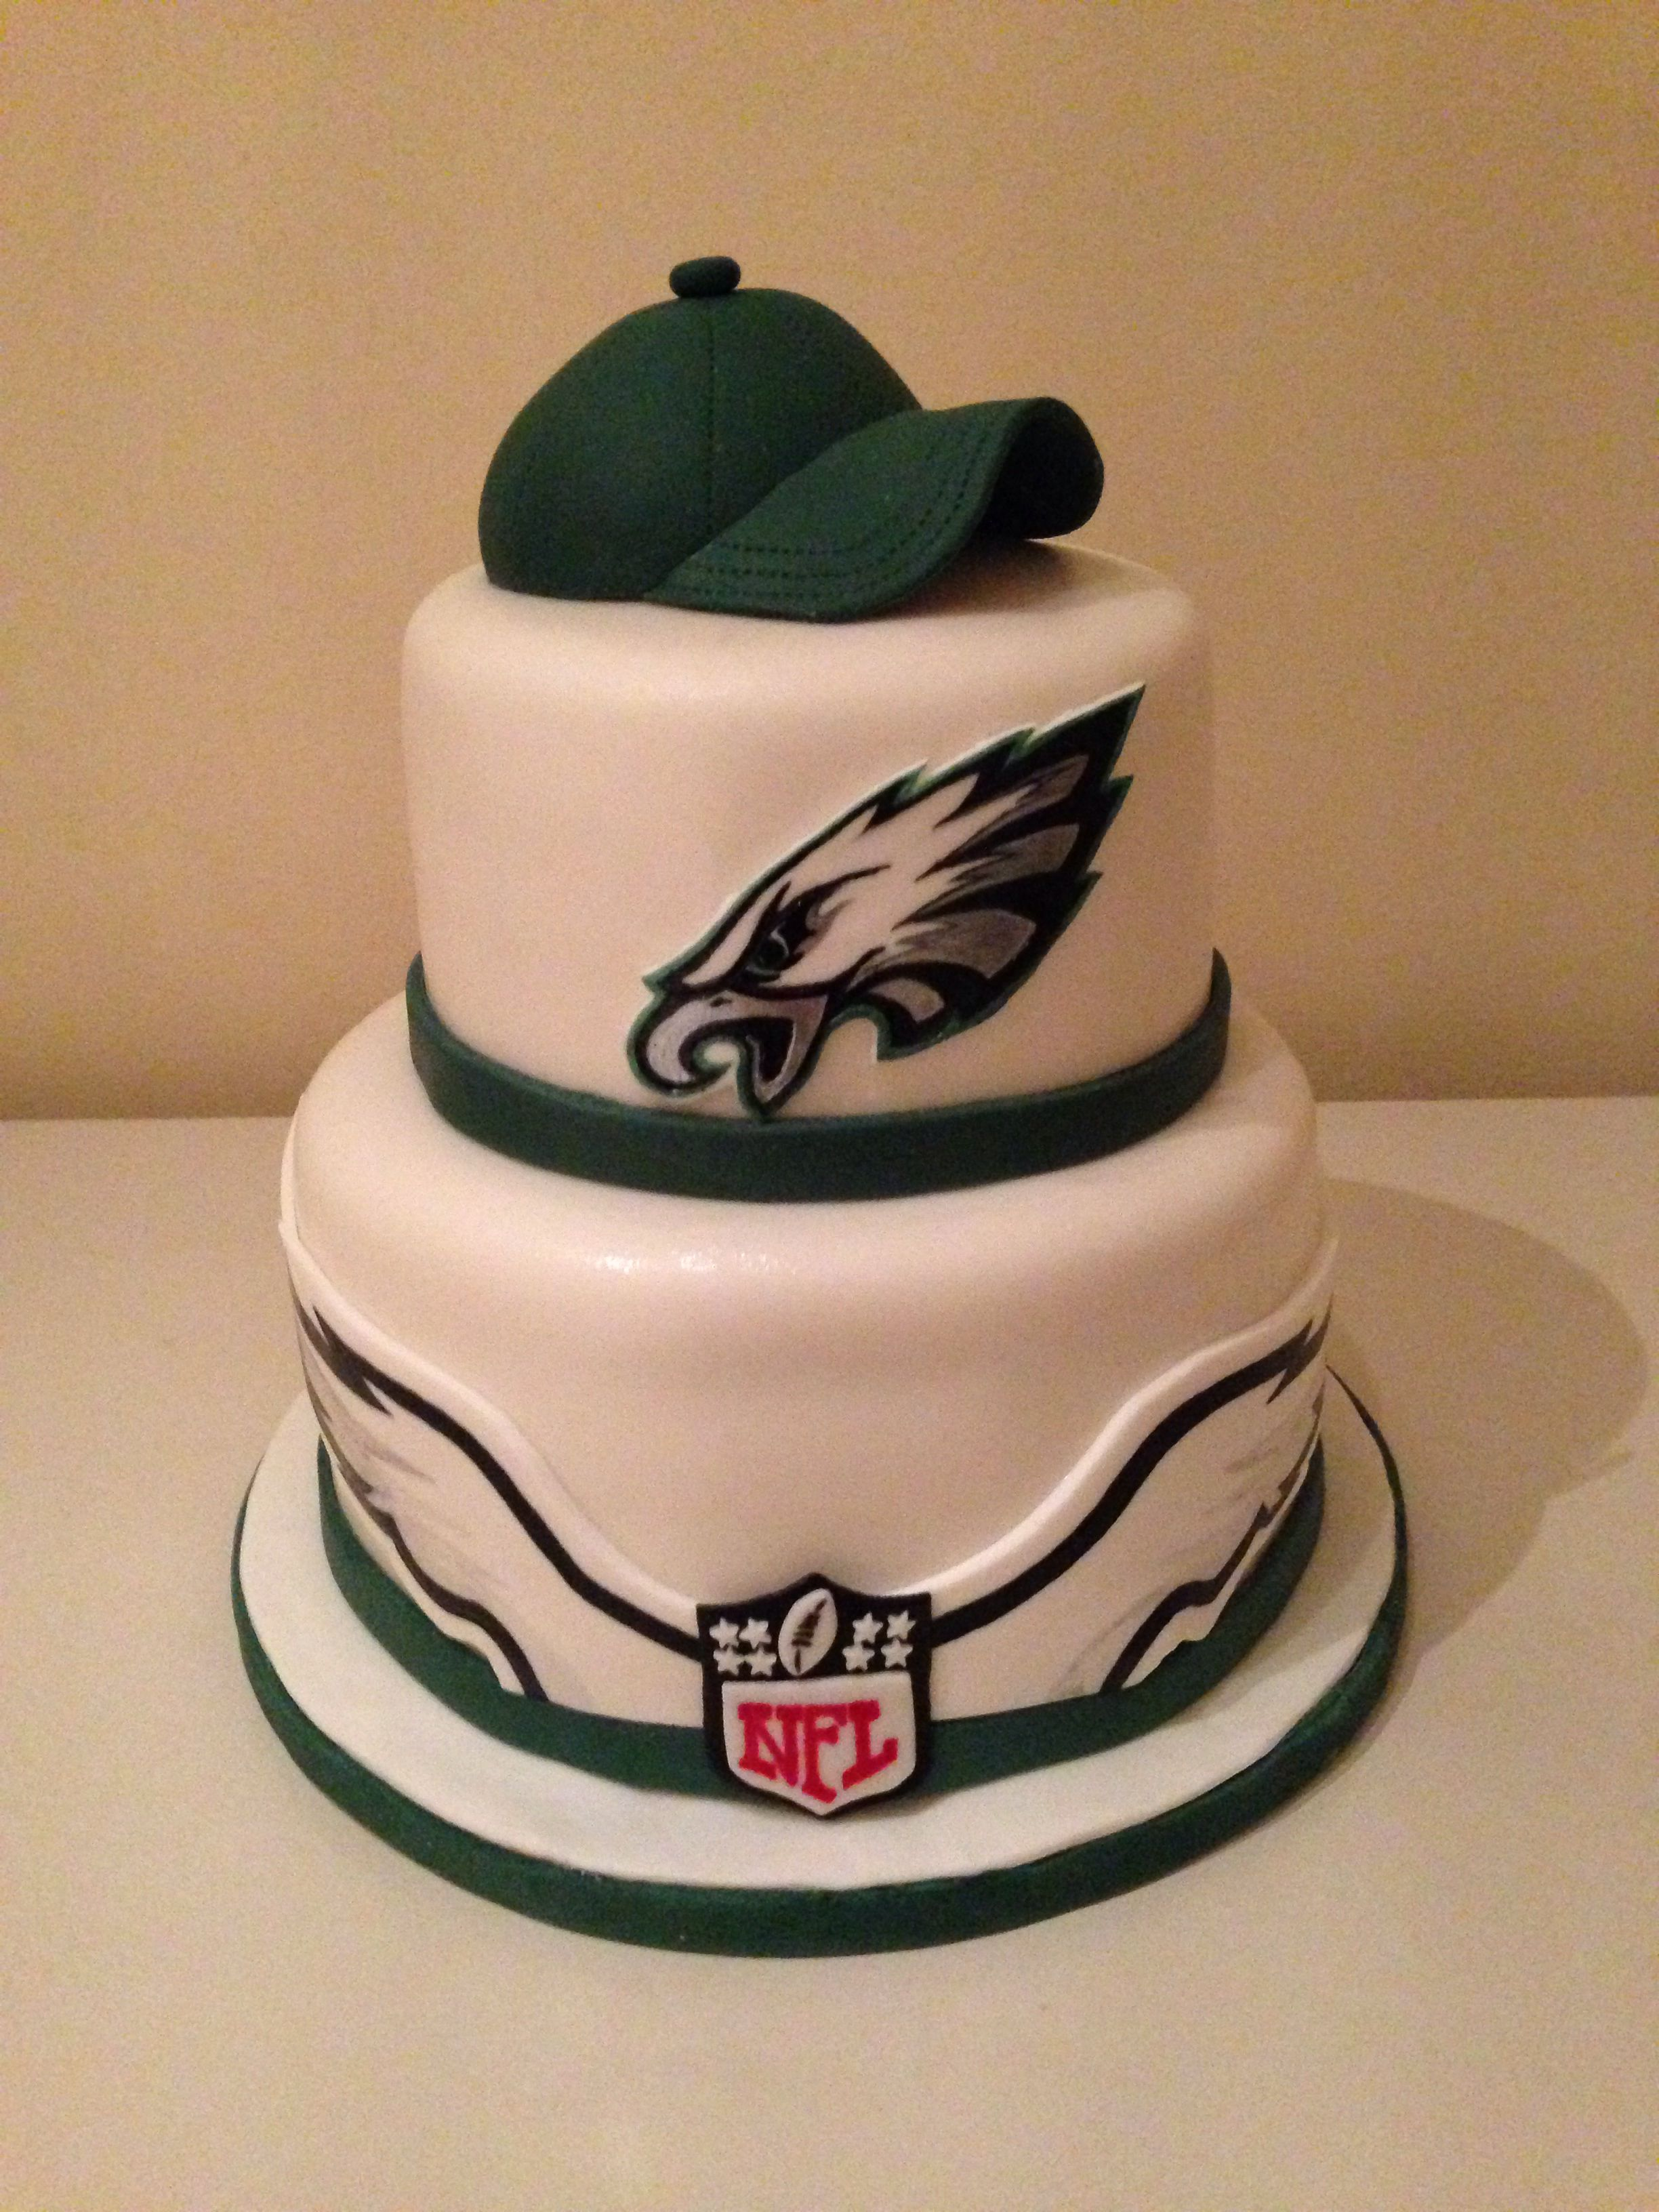 Fine Philadelphia Eagles Cake With Images Philadelphia Eagles Cake Funny Birthday Cards Online Elaedamsfinfo